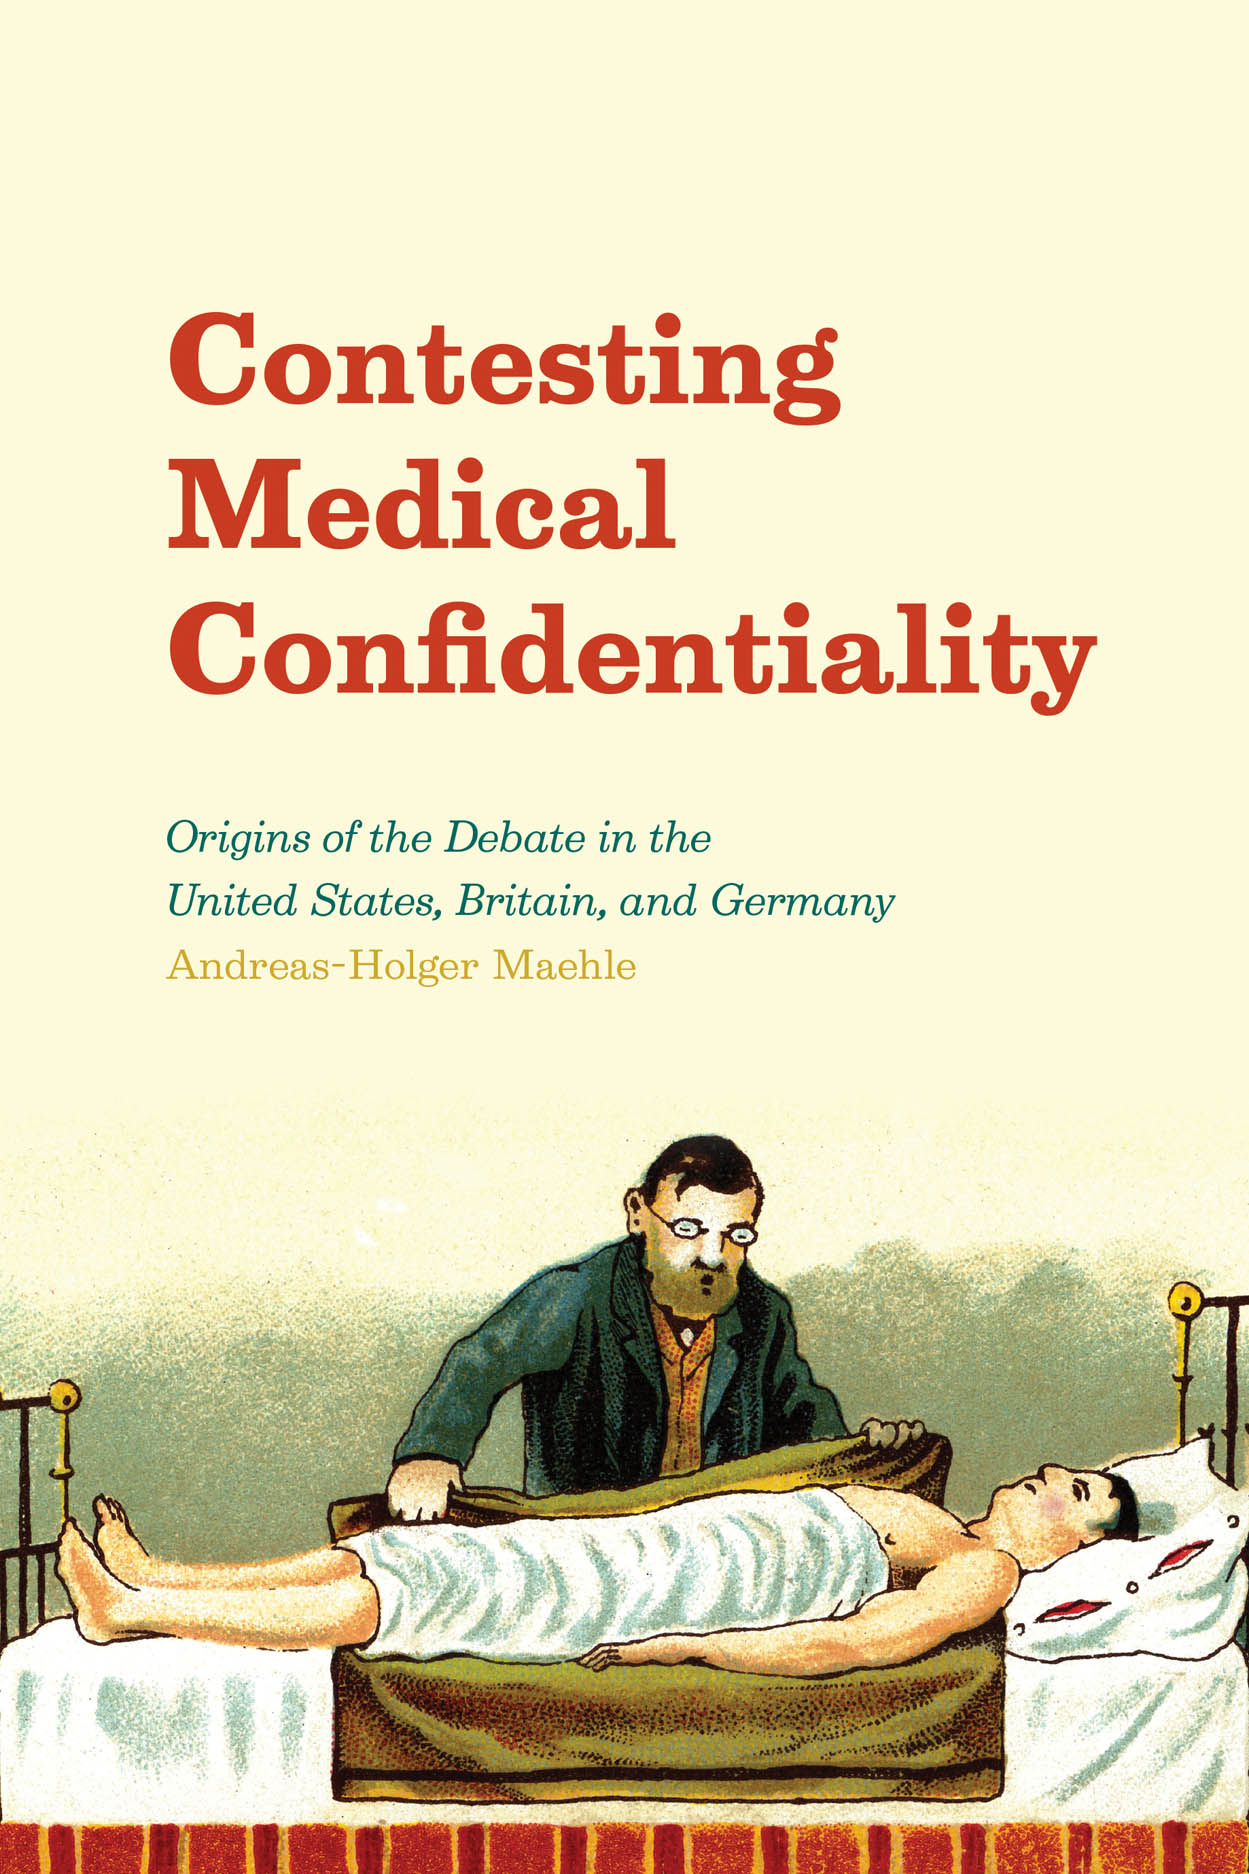 Contesting Medical Confidentiality: Origins of the Debate in the United States, Britain, and Germany